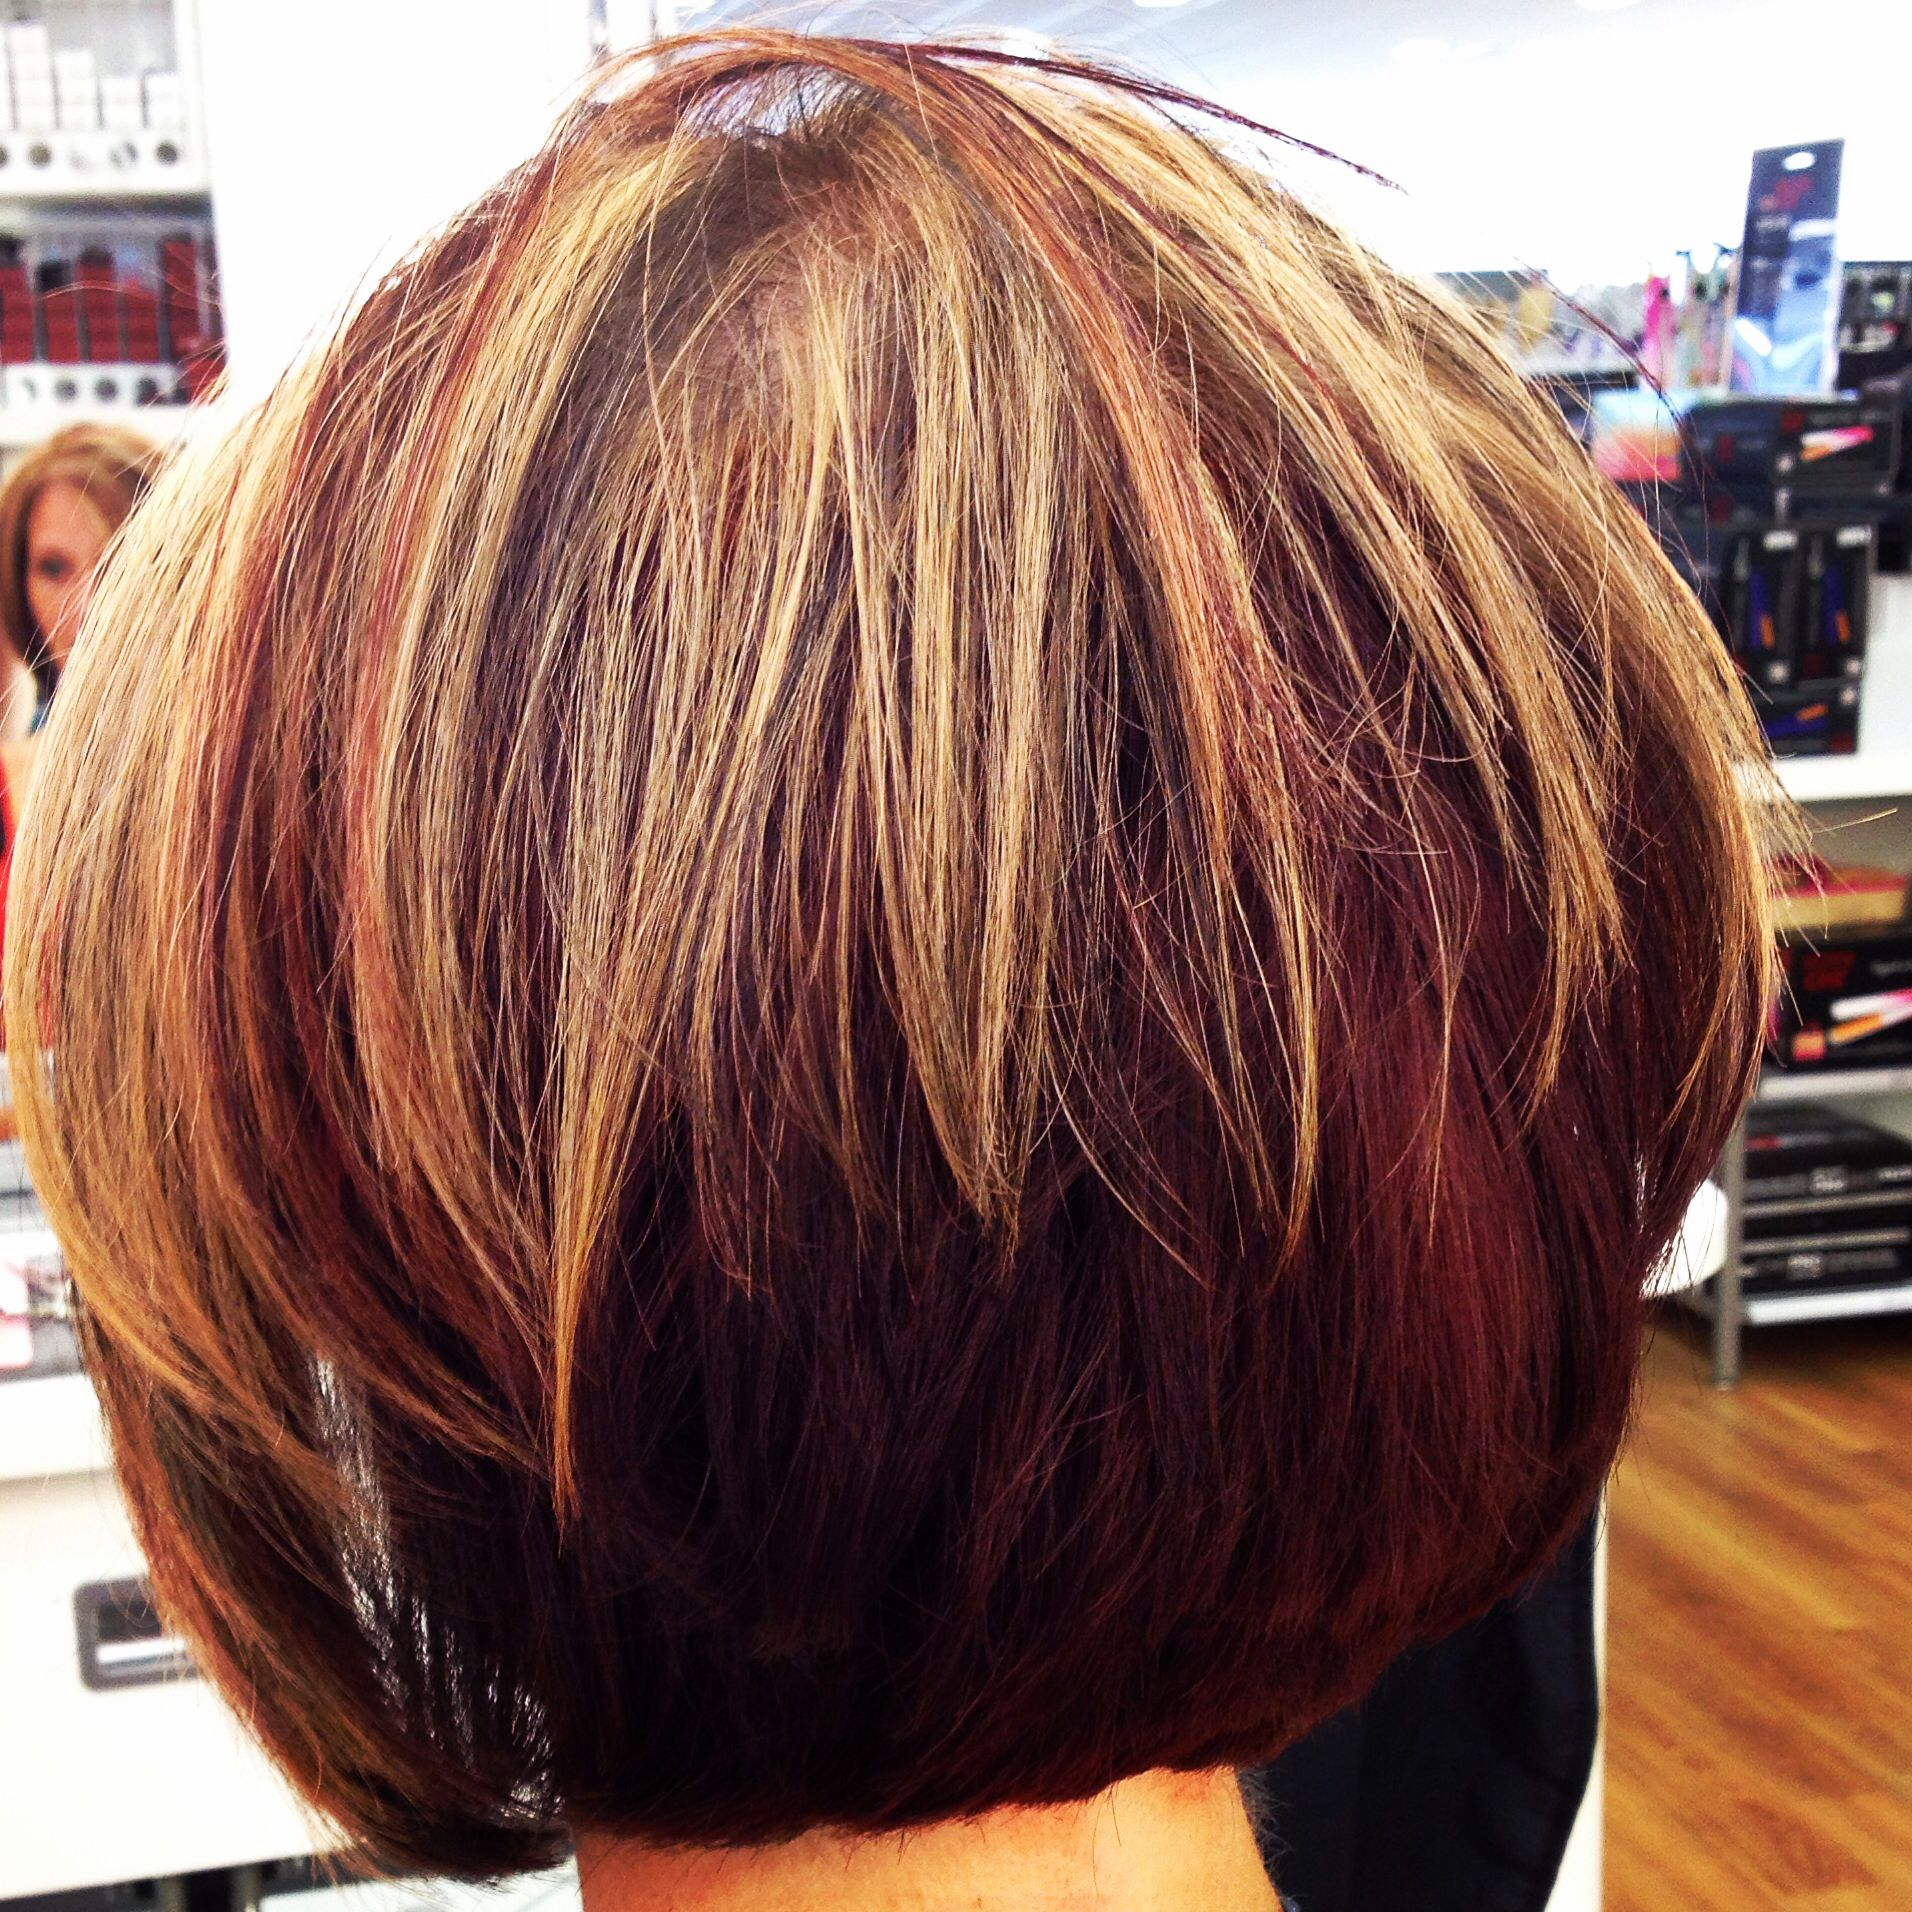 Red Blonde And Dark Highlights And Lowlights Red Mahogany Underneath Diagonal Forward Bob Redken Cert Short Hair Highlights Hair Color Highlights Red To Blonde